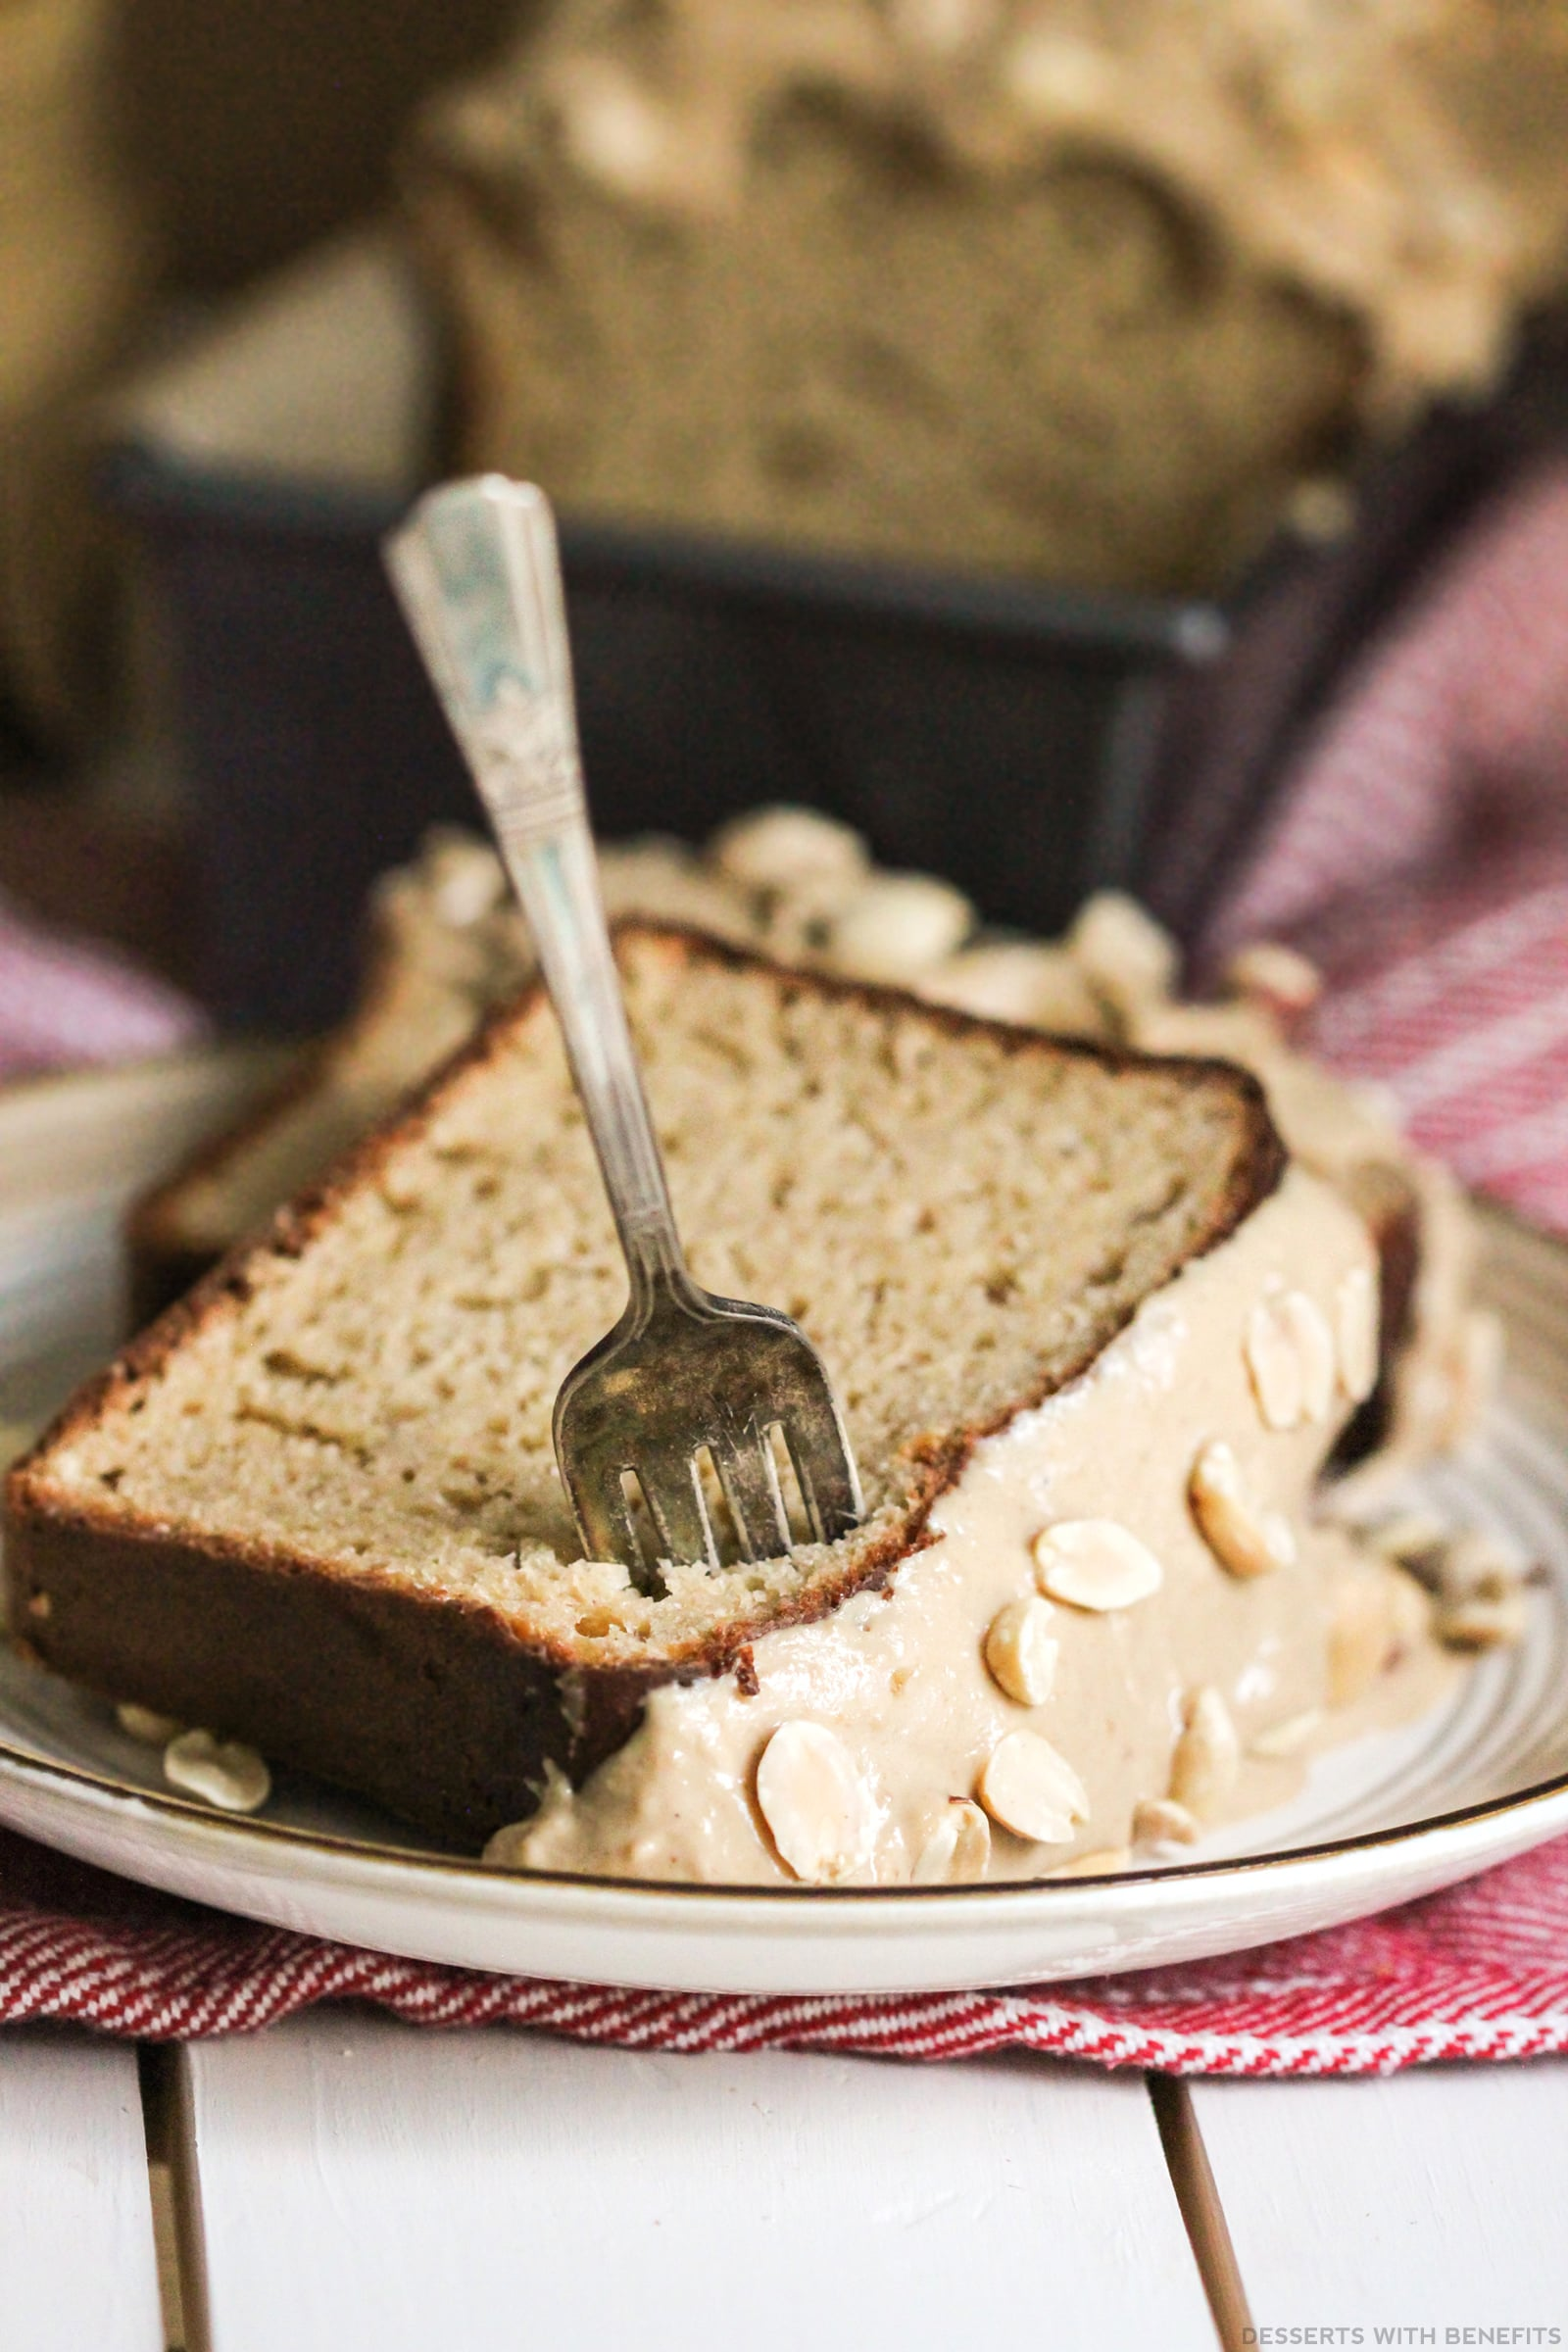 Healthy Peanut Butter Pound Cake with Peanut Butter Frosting (refined sugar free, high protein, high fiber) - Healthy Dessert Recipes at Desserts with Benefits